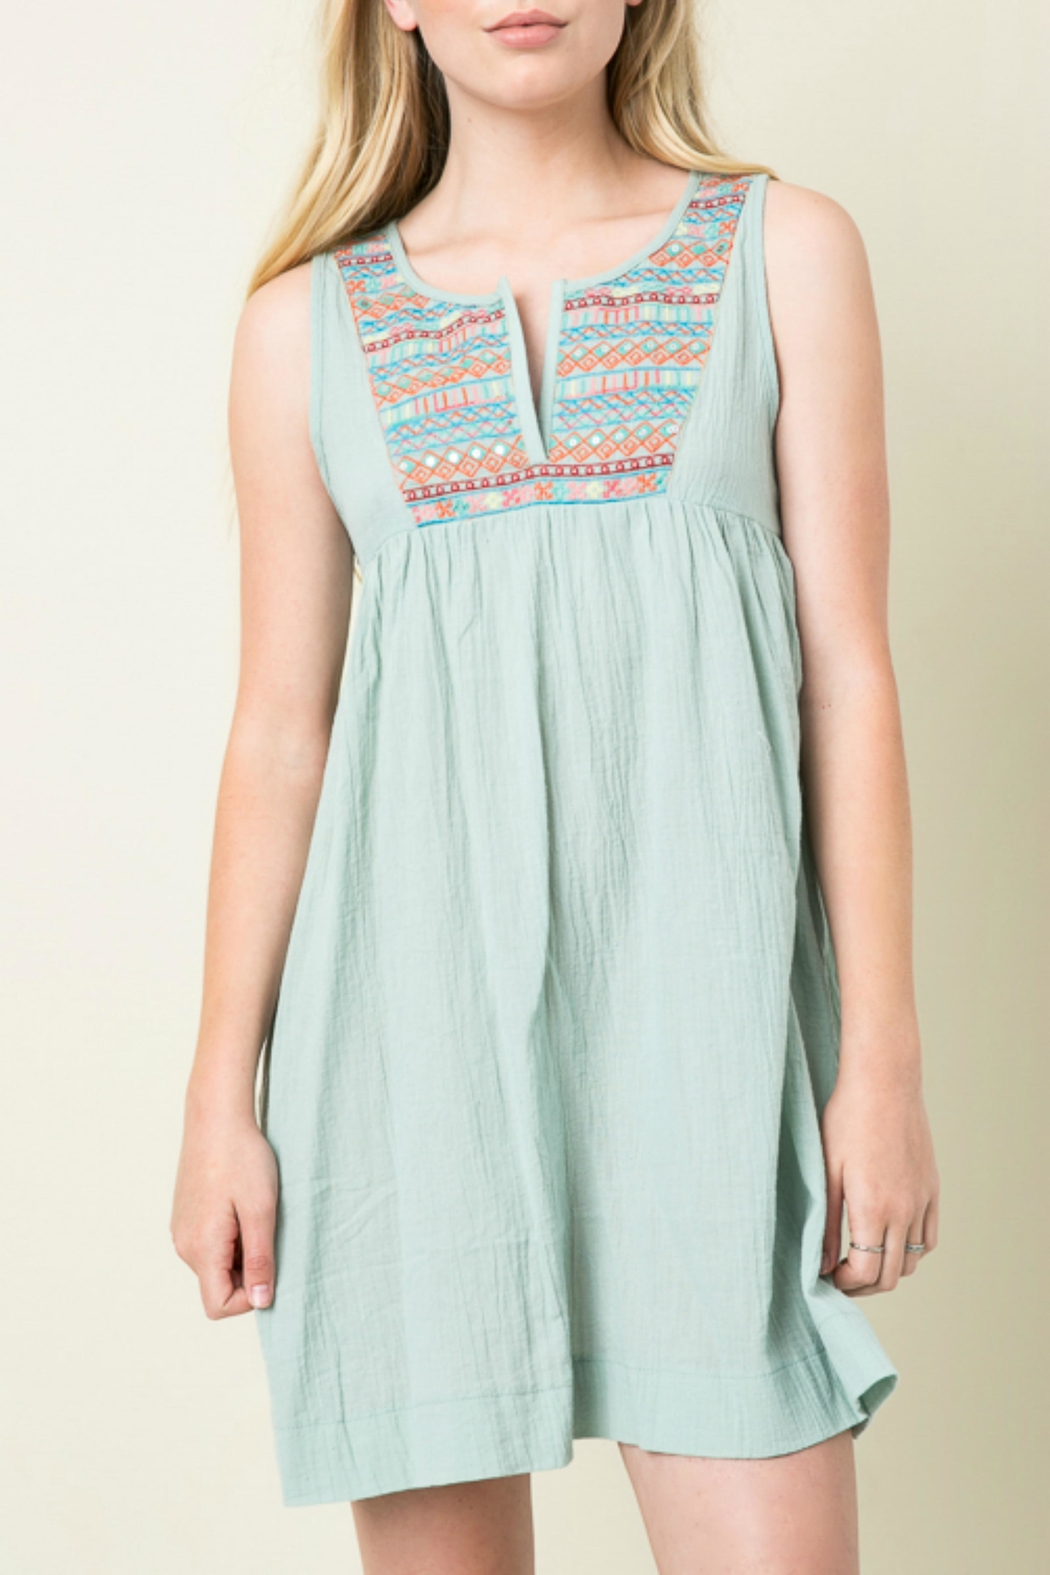 Hayden Los Angeles Boho Summer Dress - Main Image